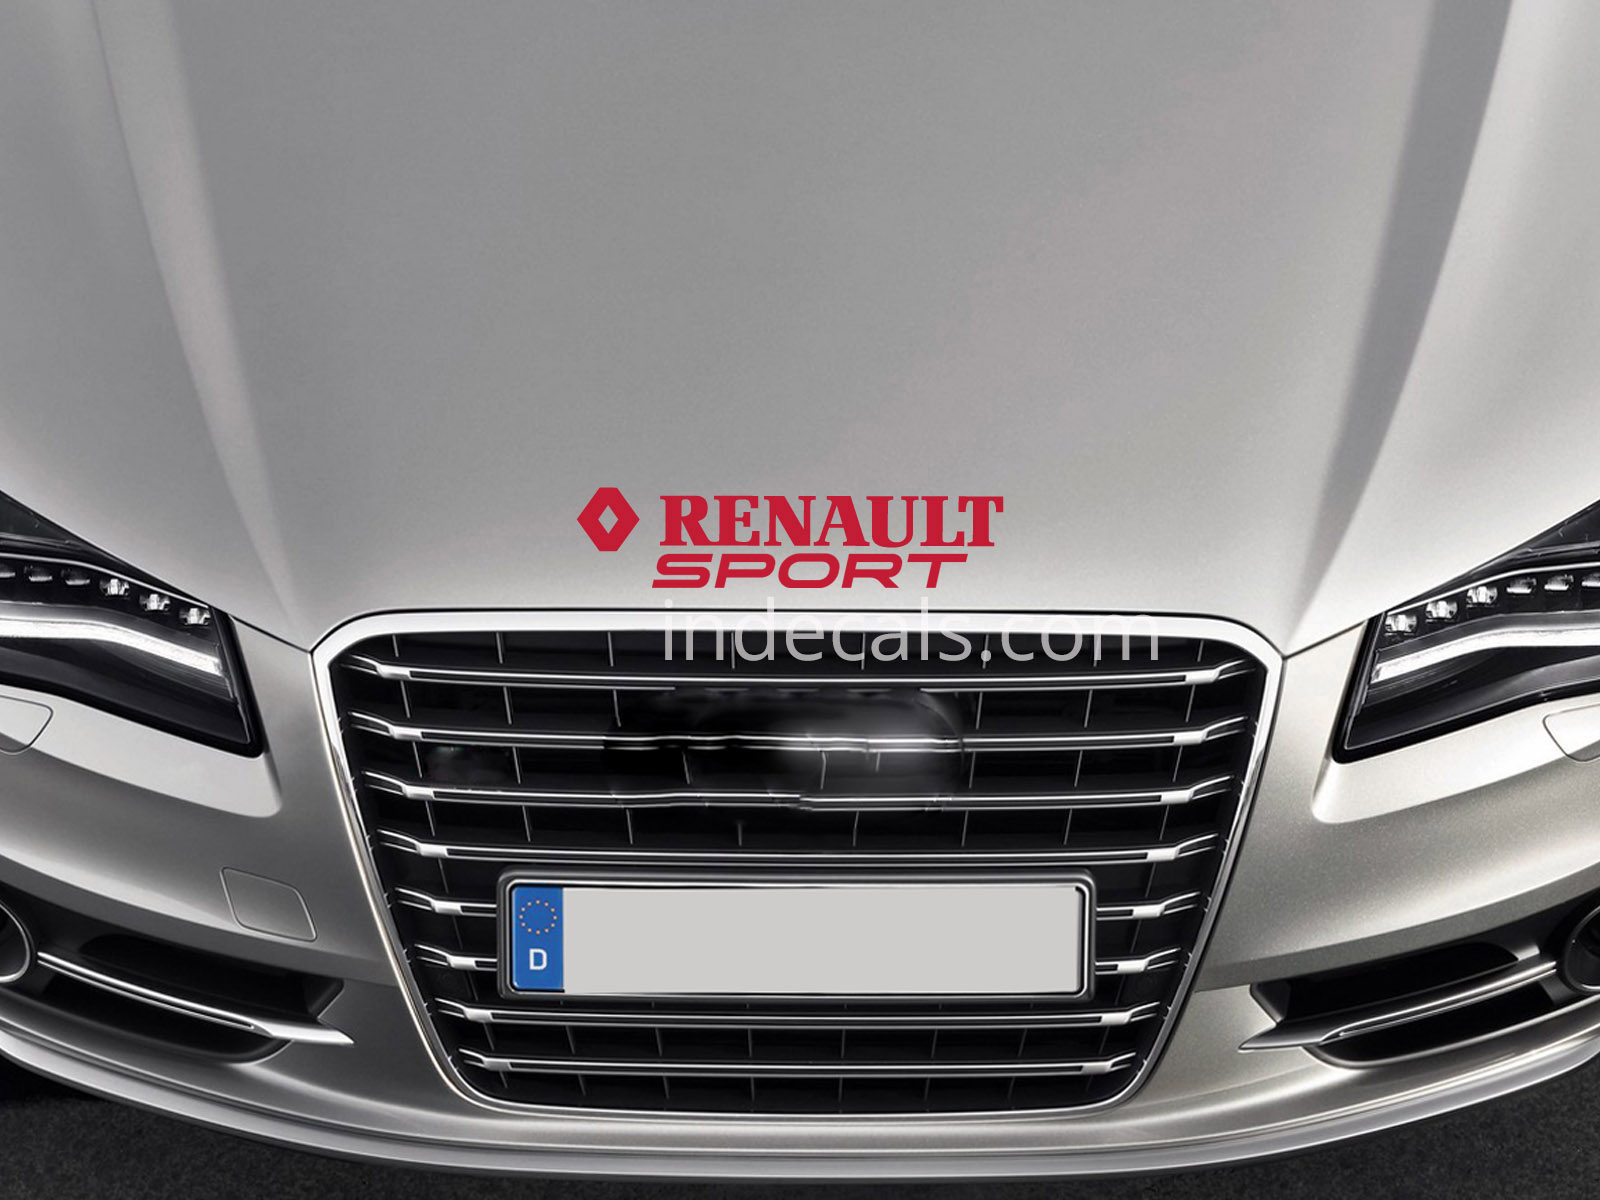 1 x Renault Sport Sticker for Bonnet - Red